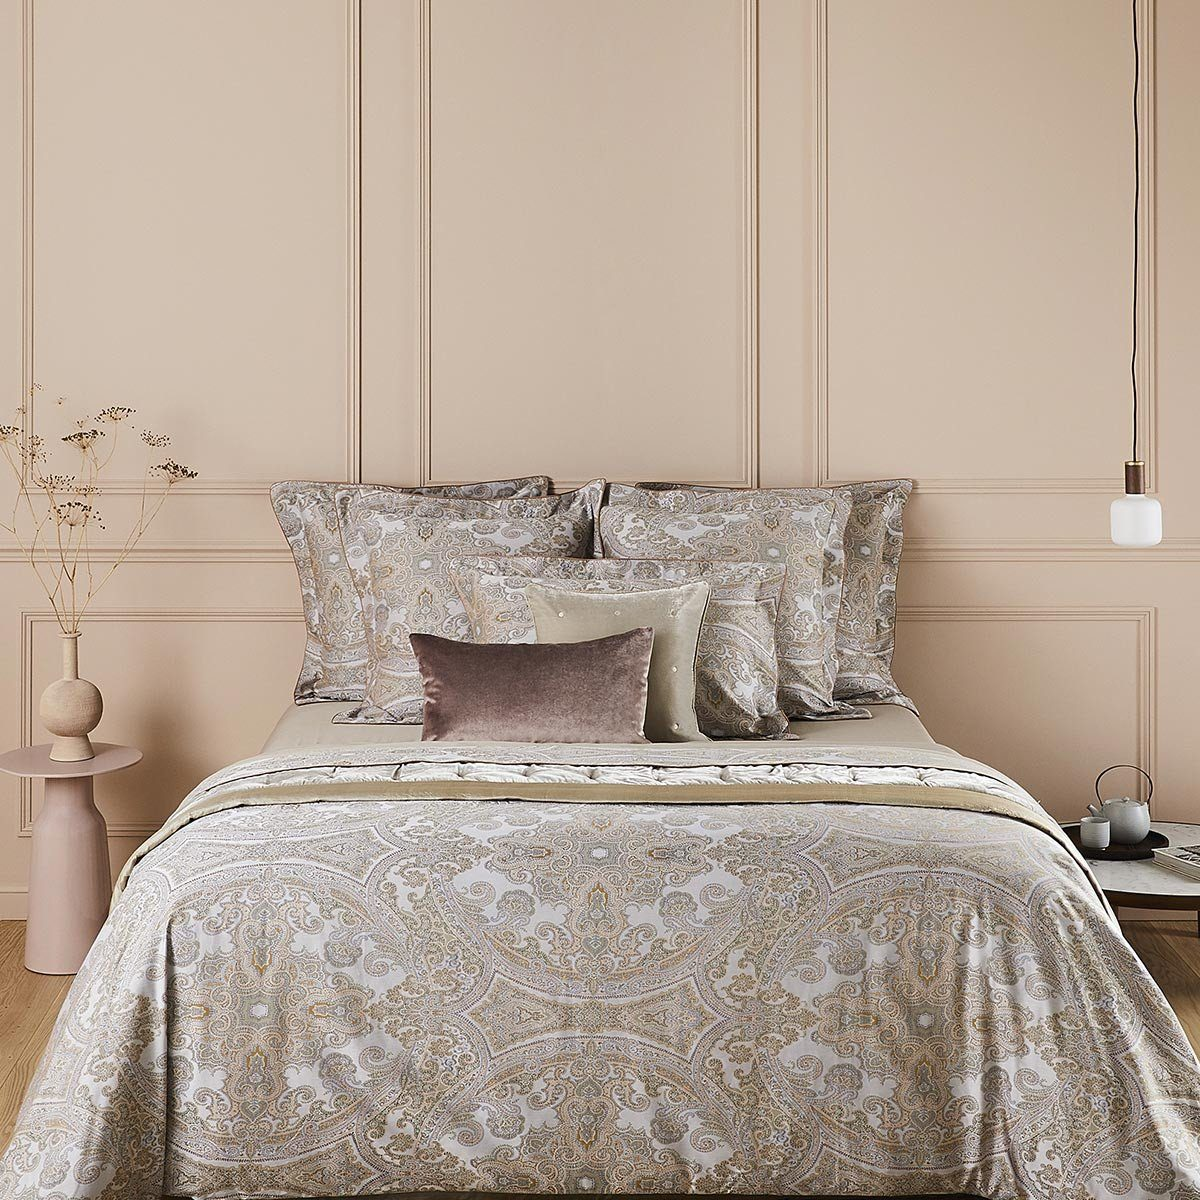 Cachemire Bedding by Yves Delorme